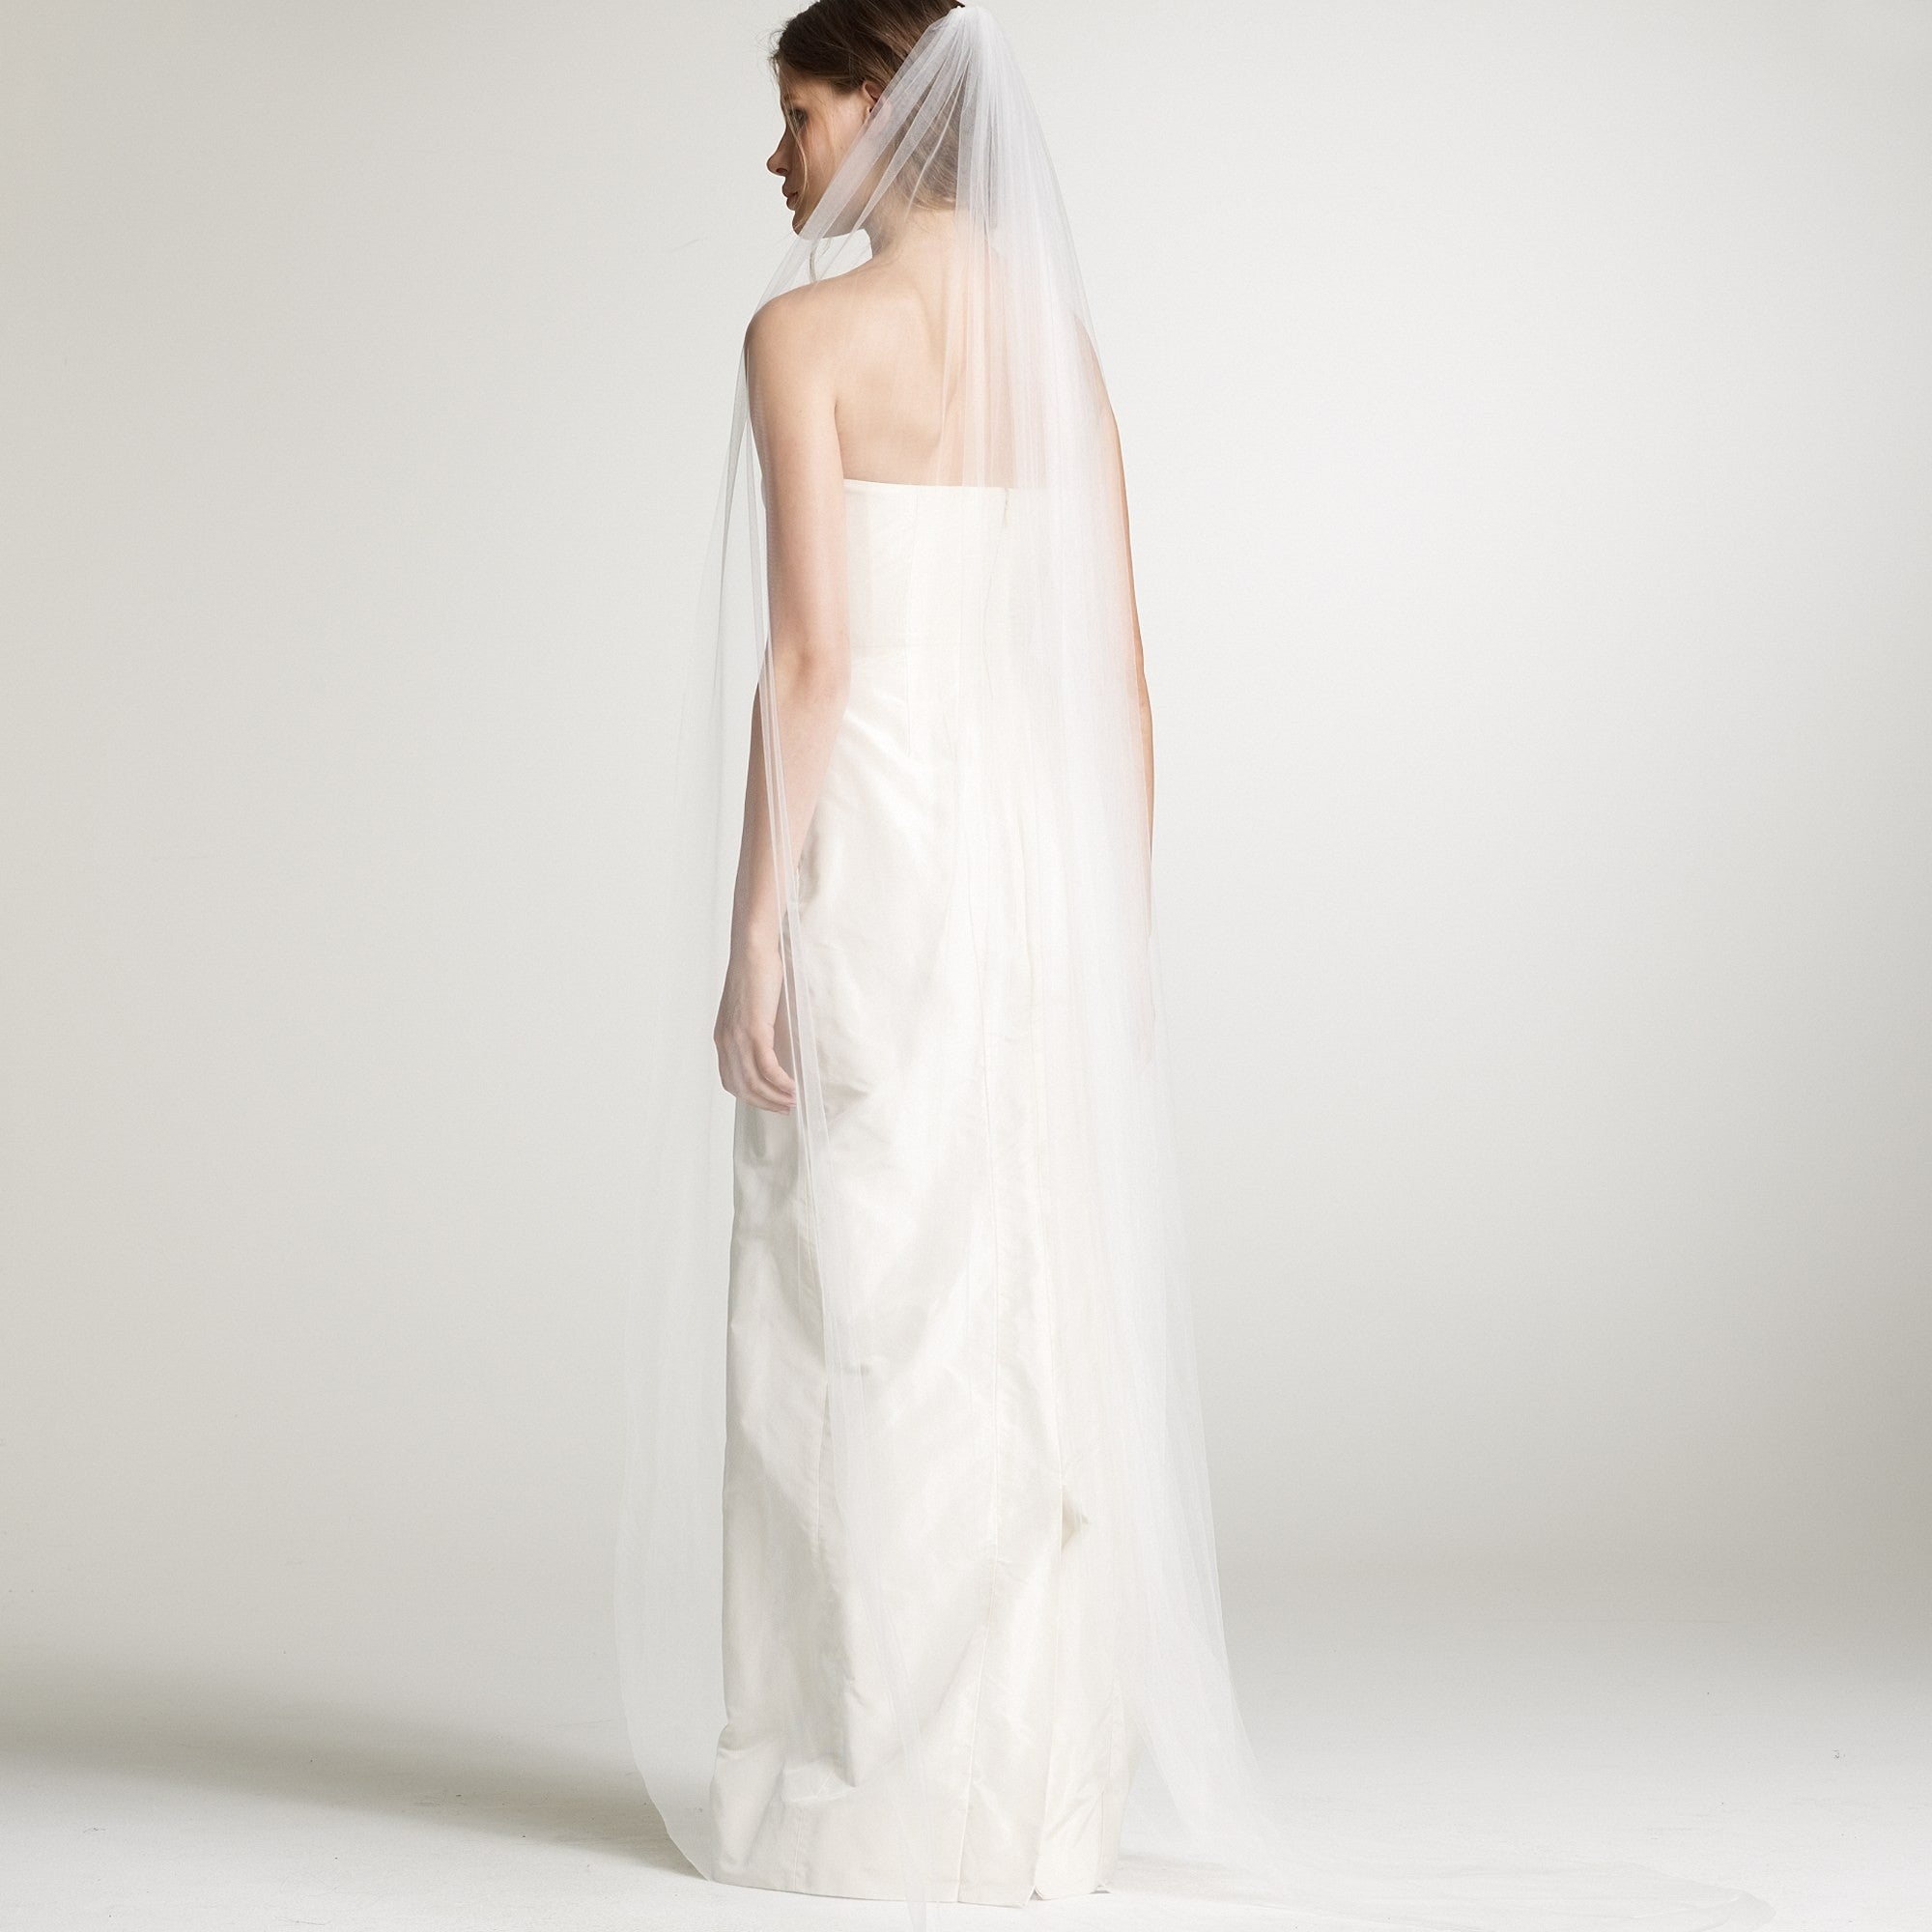 J. Crew Floor-length Bridal Veil